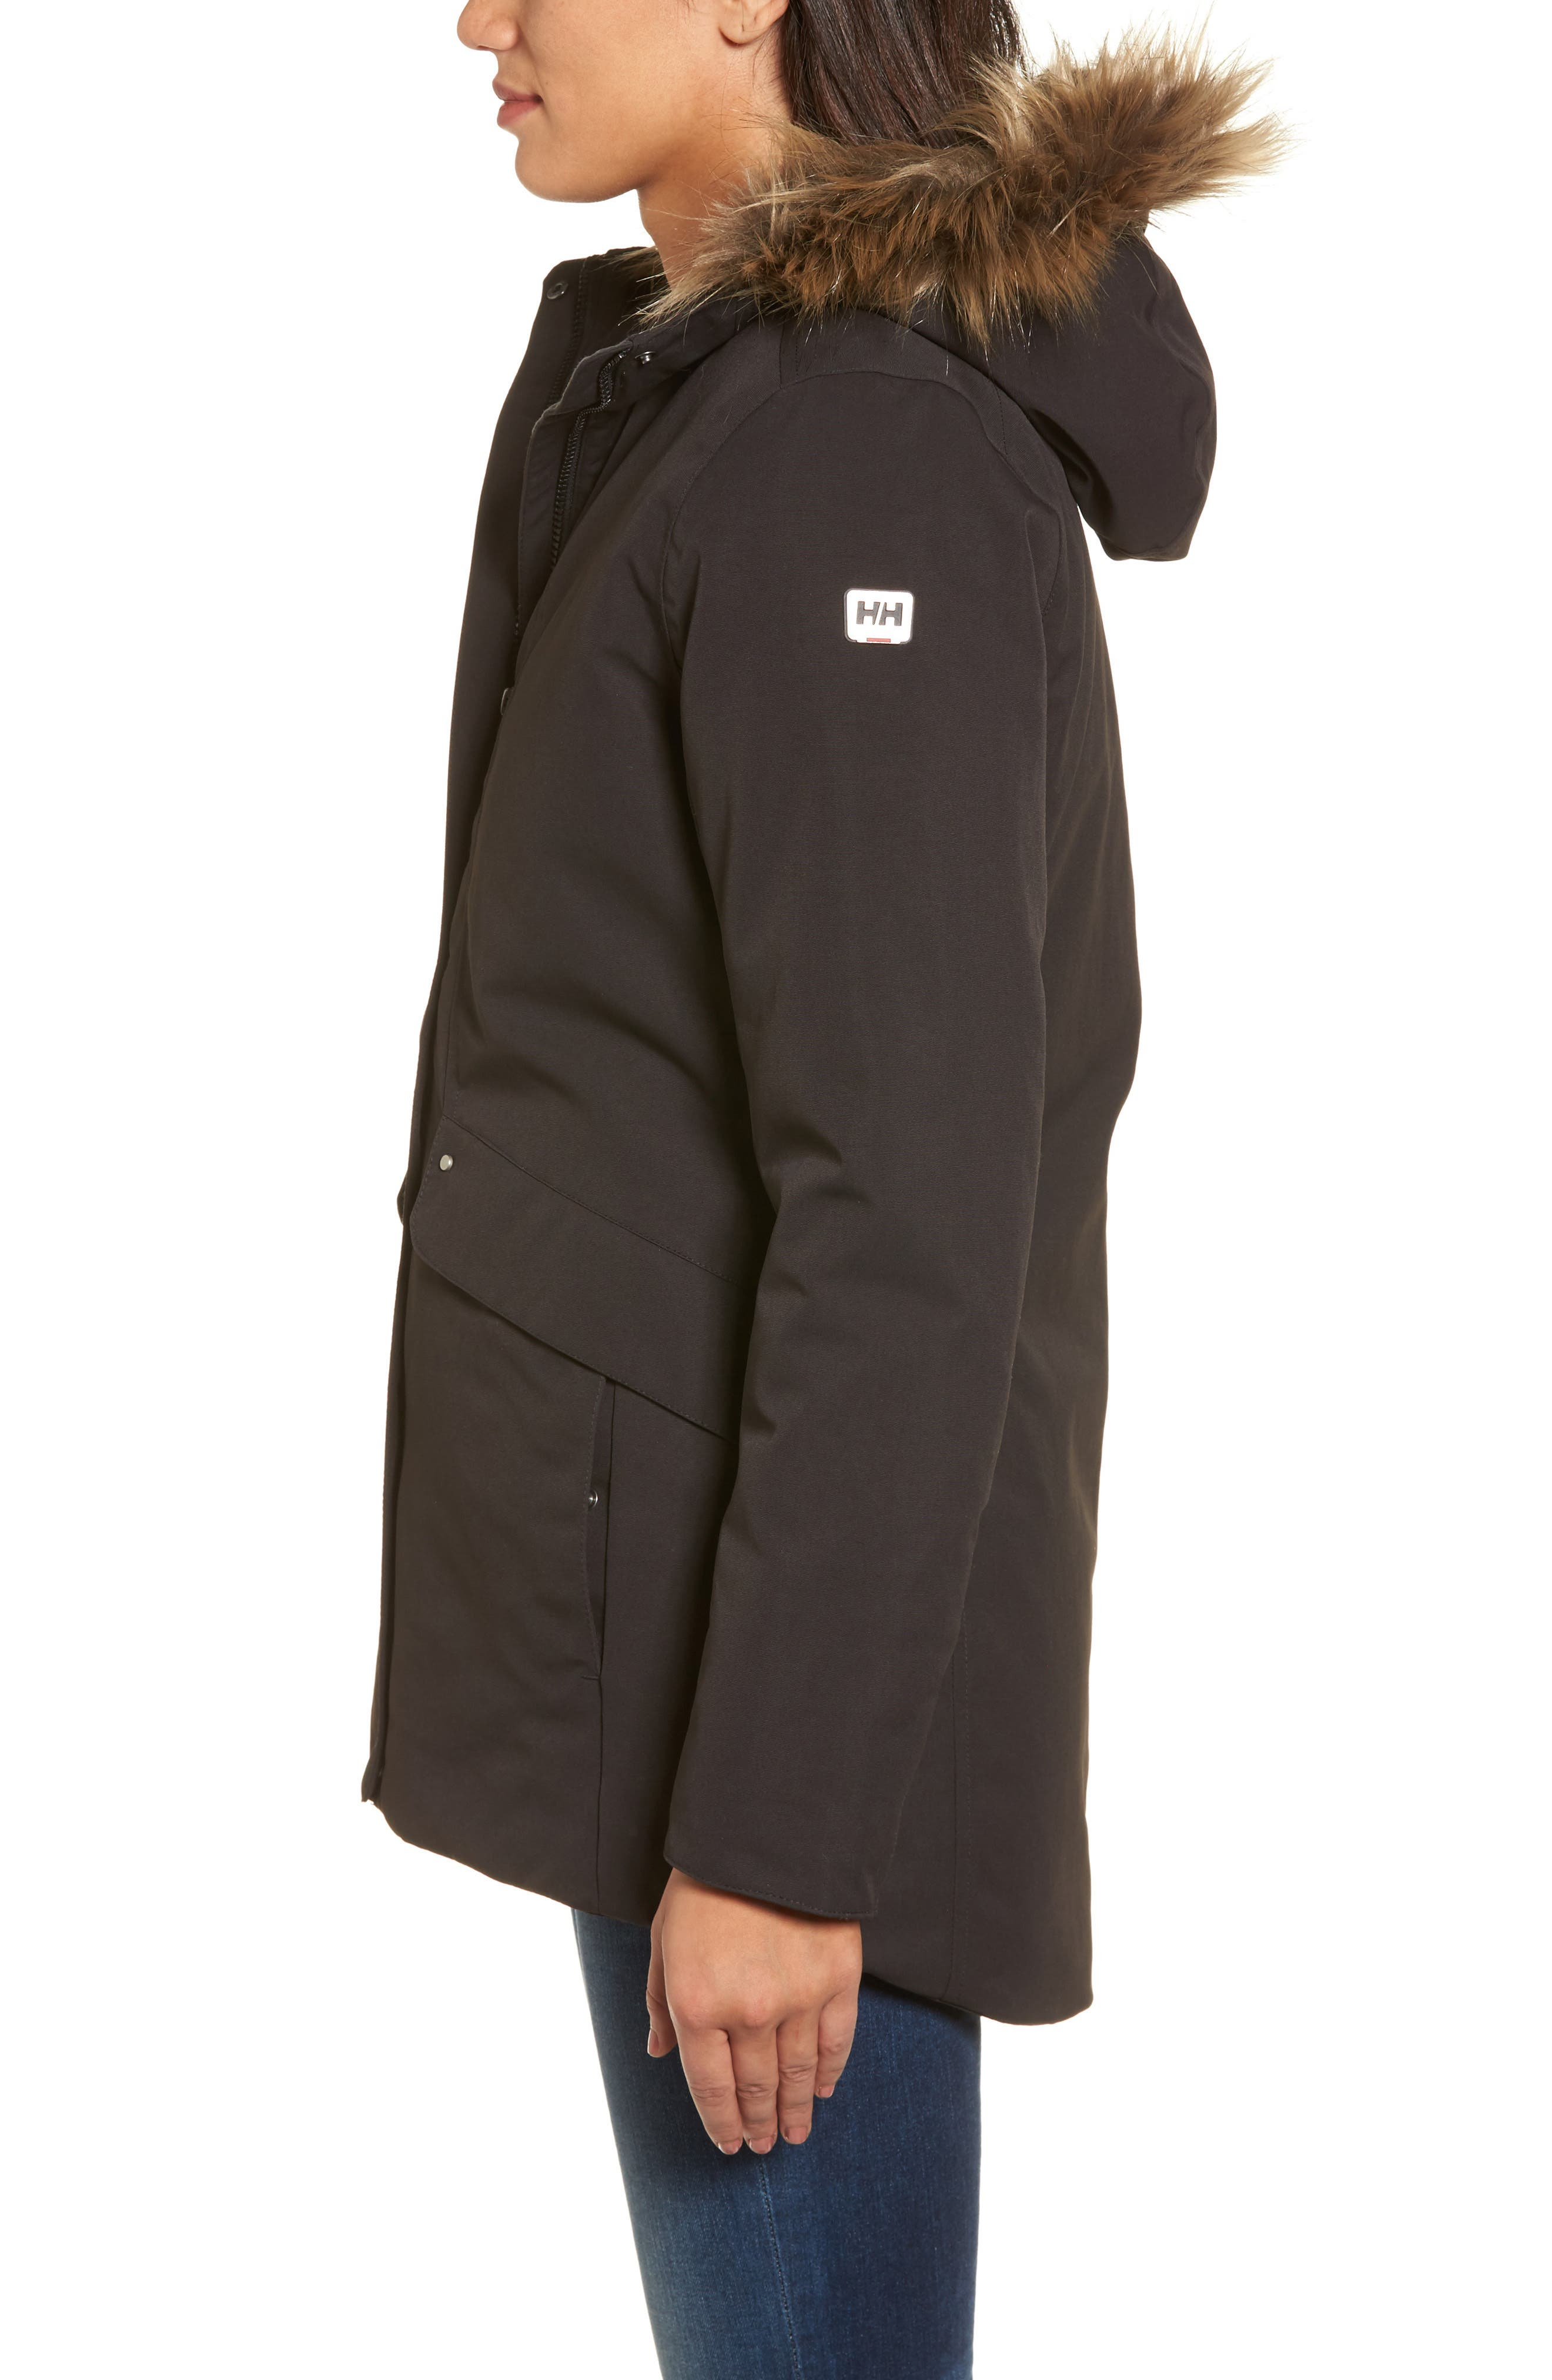 Helly Hansen 'Eira' Waterproof Jacket with Faux Fur Hood,                             Alternate thumbnail 3, color,                             009